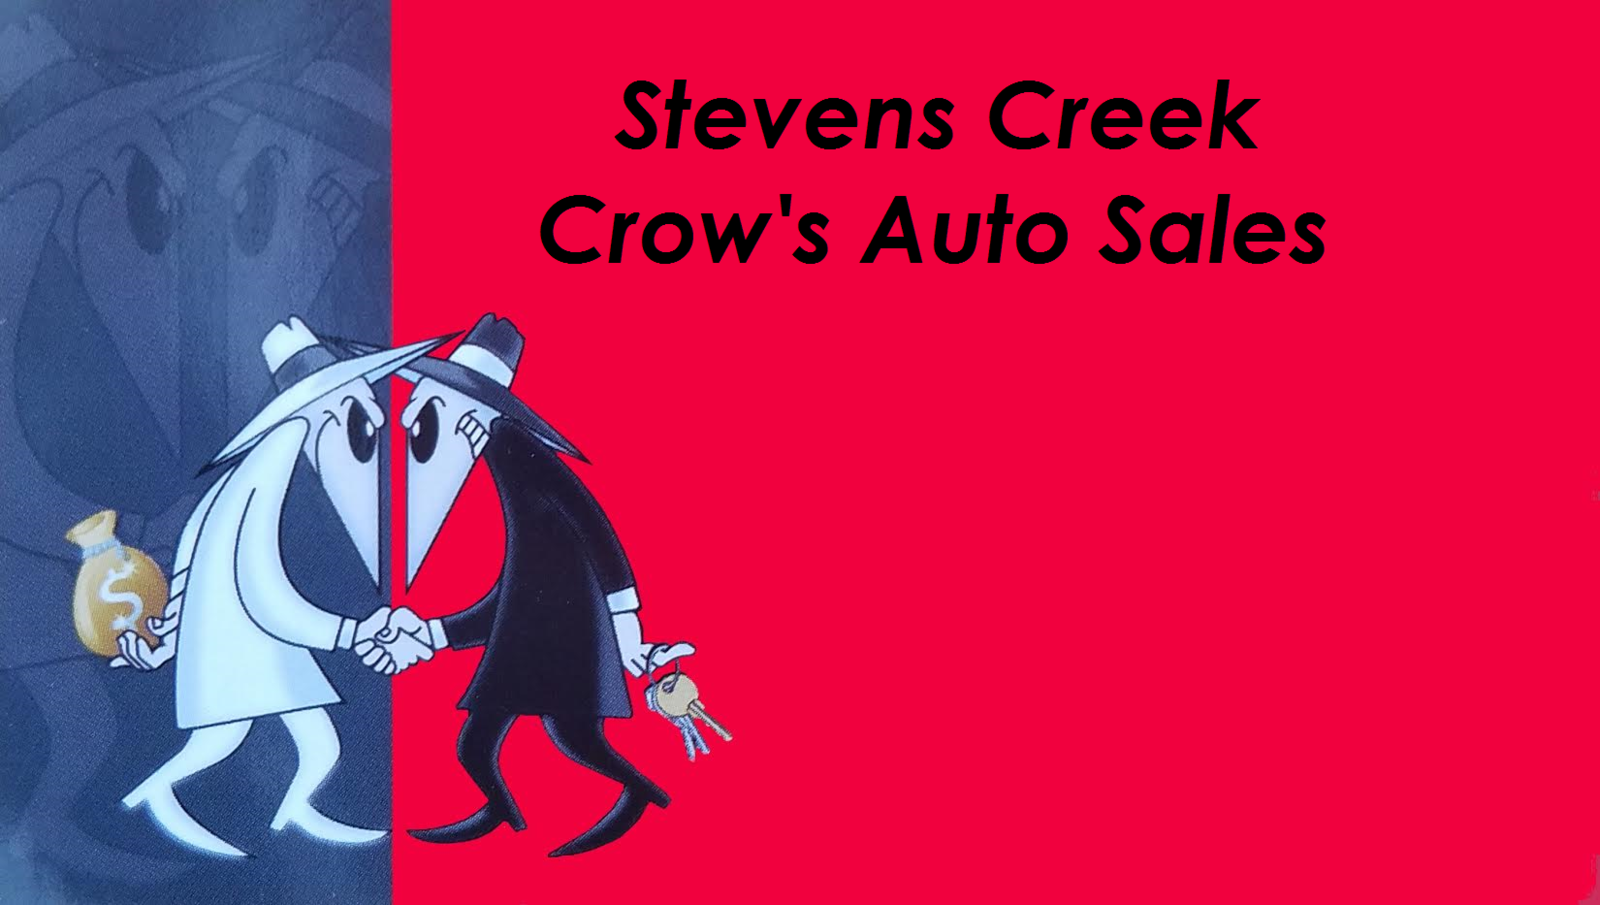 Stevens Creek Lexus Used Cars >> Stevens Creek Crow's Auto Sales - San Jose, CA: Read Consumer reviews, Browse Used and New Cars ...